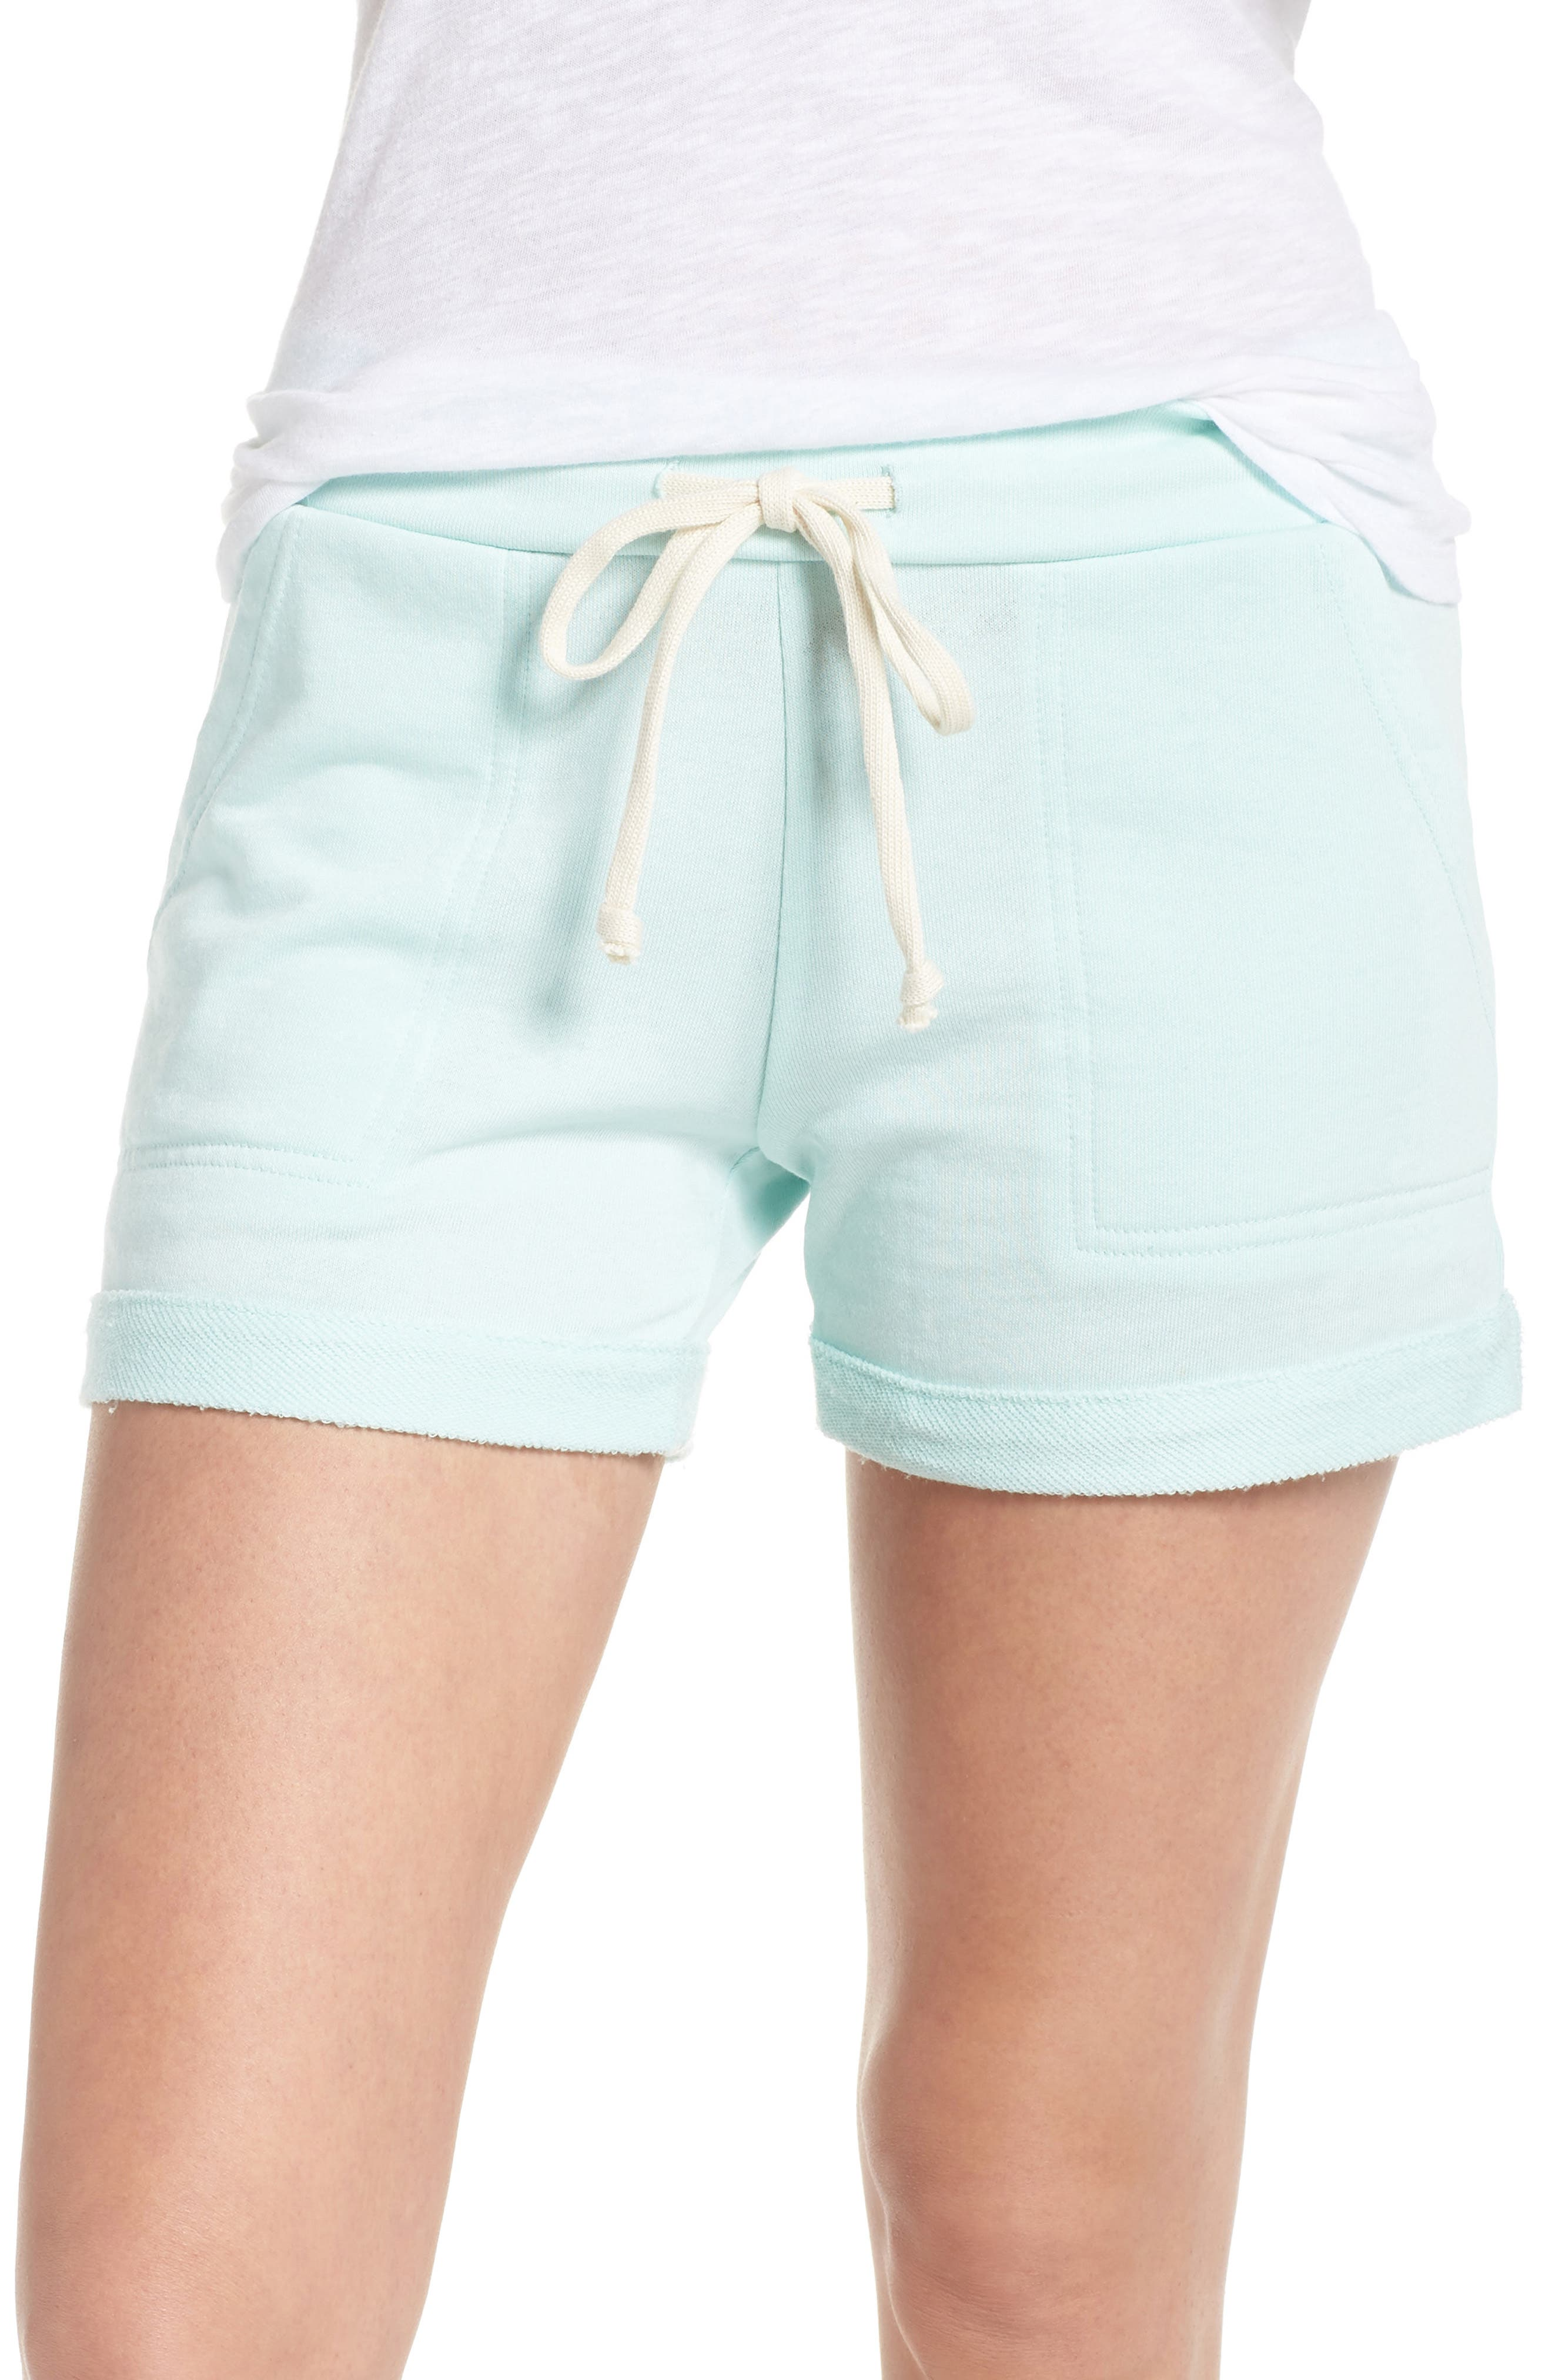 Lounge Shorts,                         Main,                         color, 300